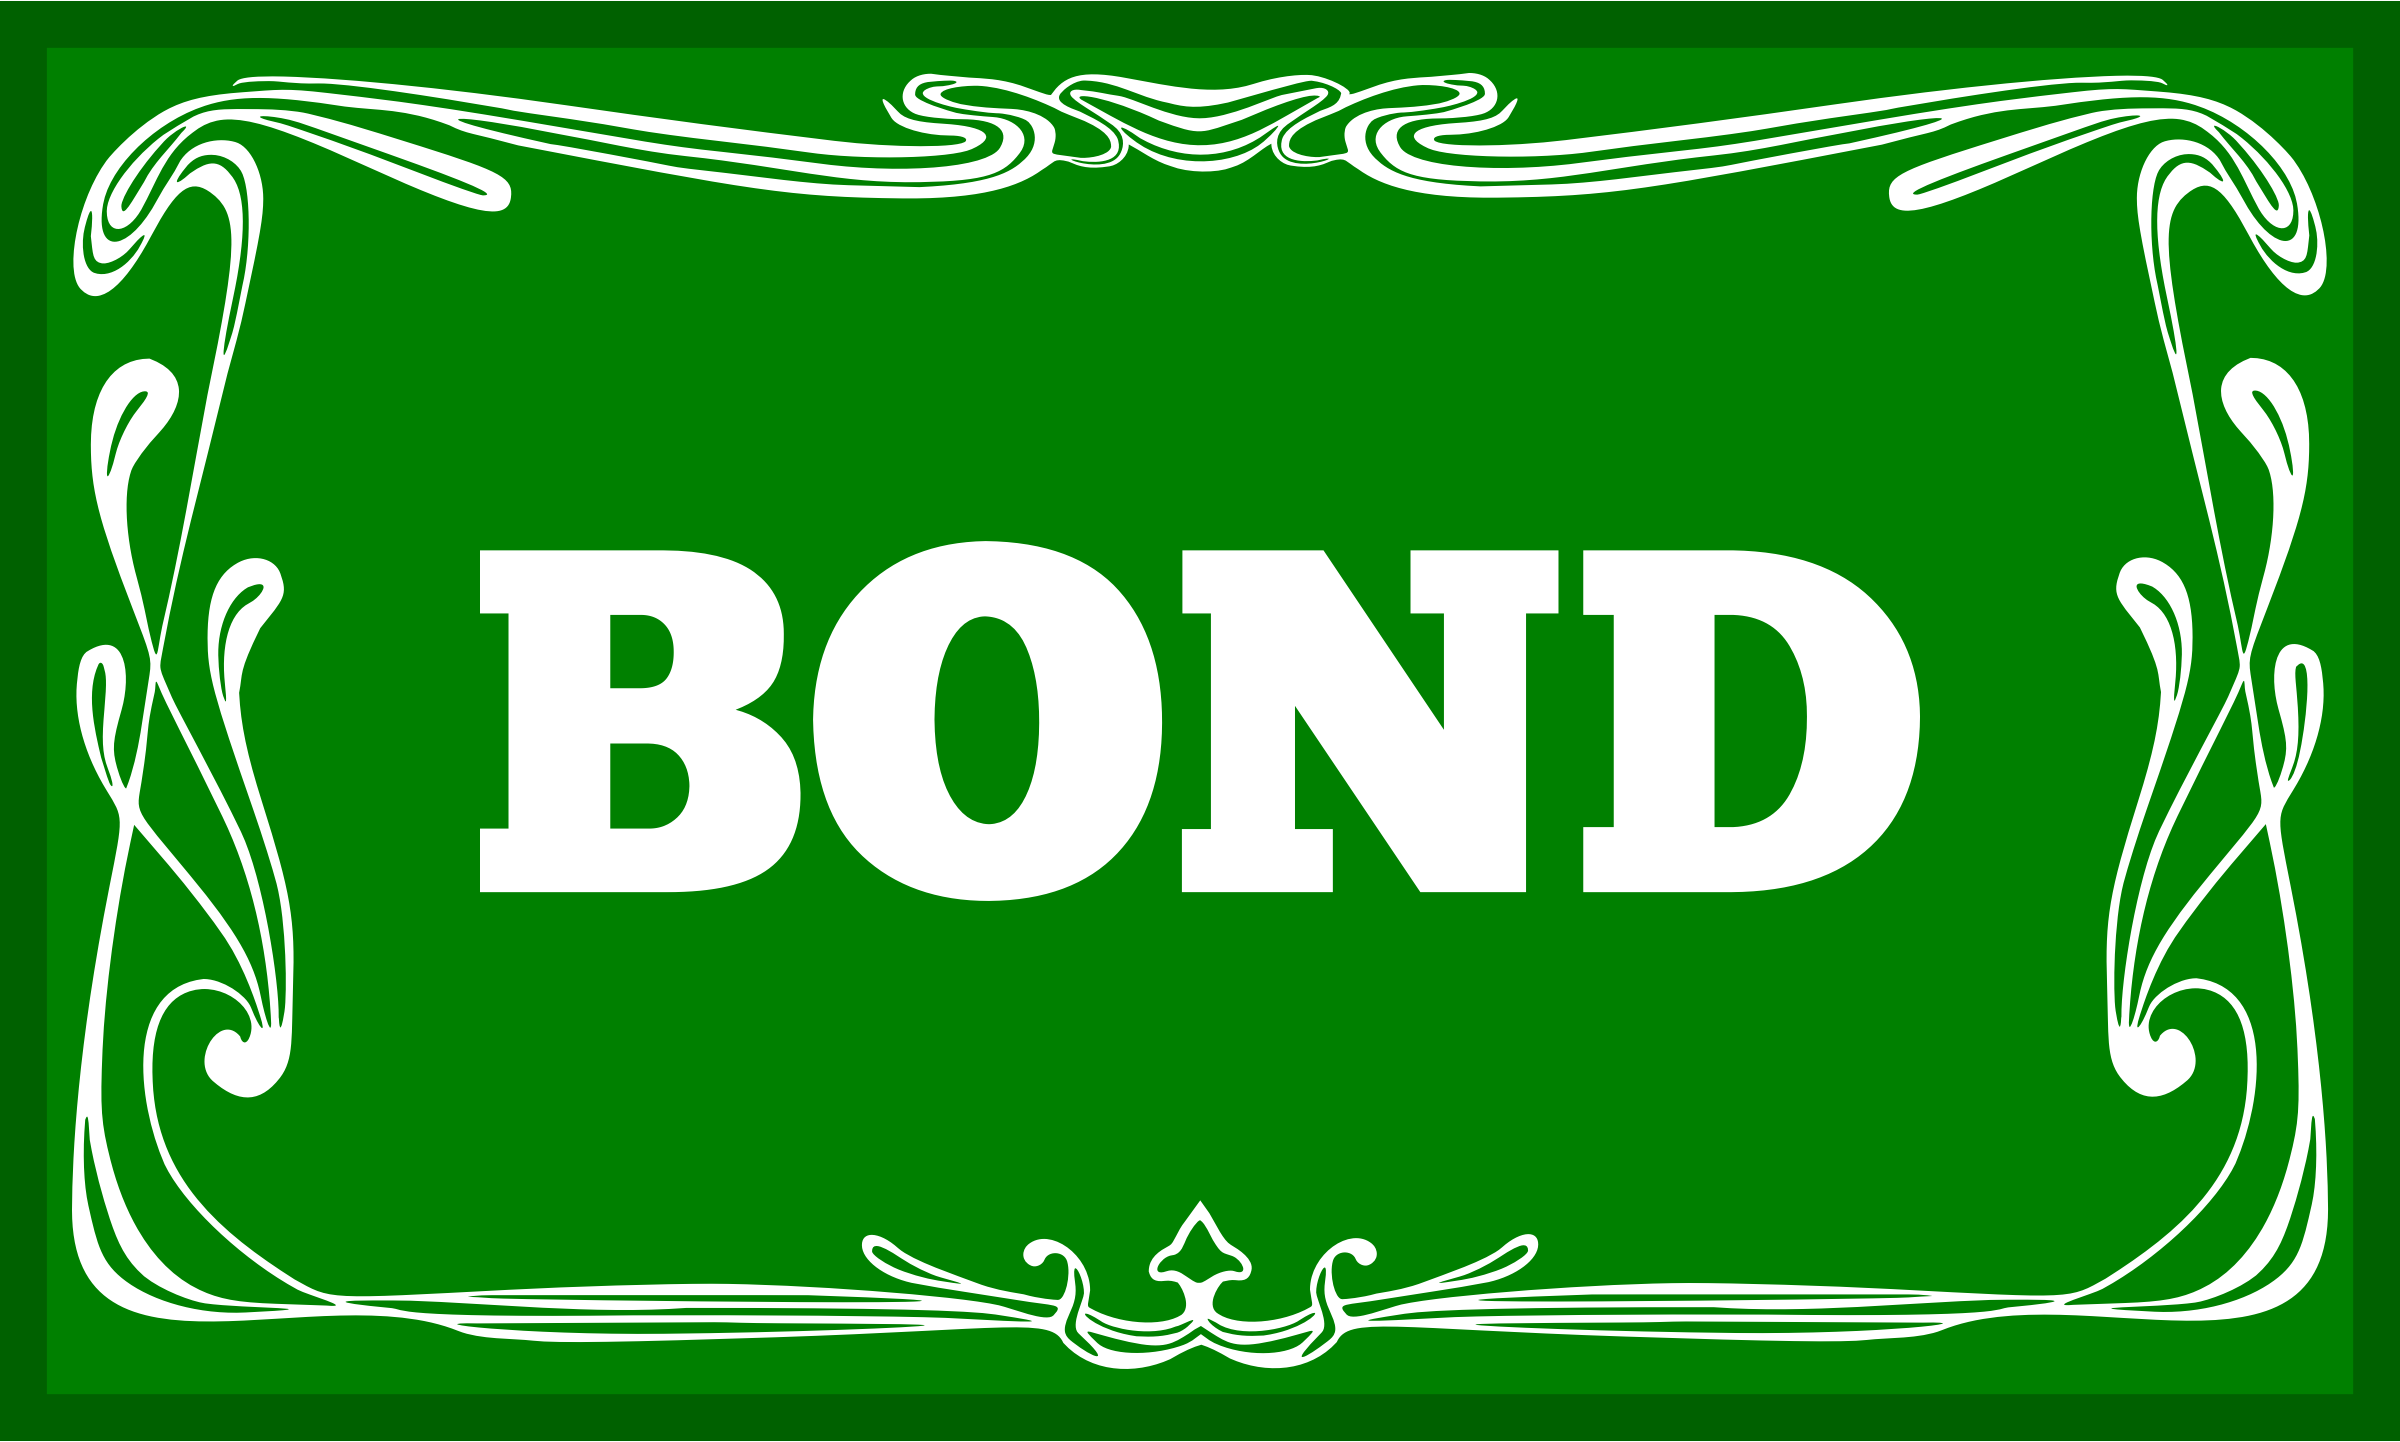 Bond by Alastair